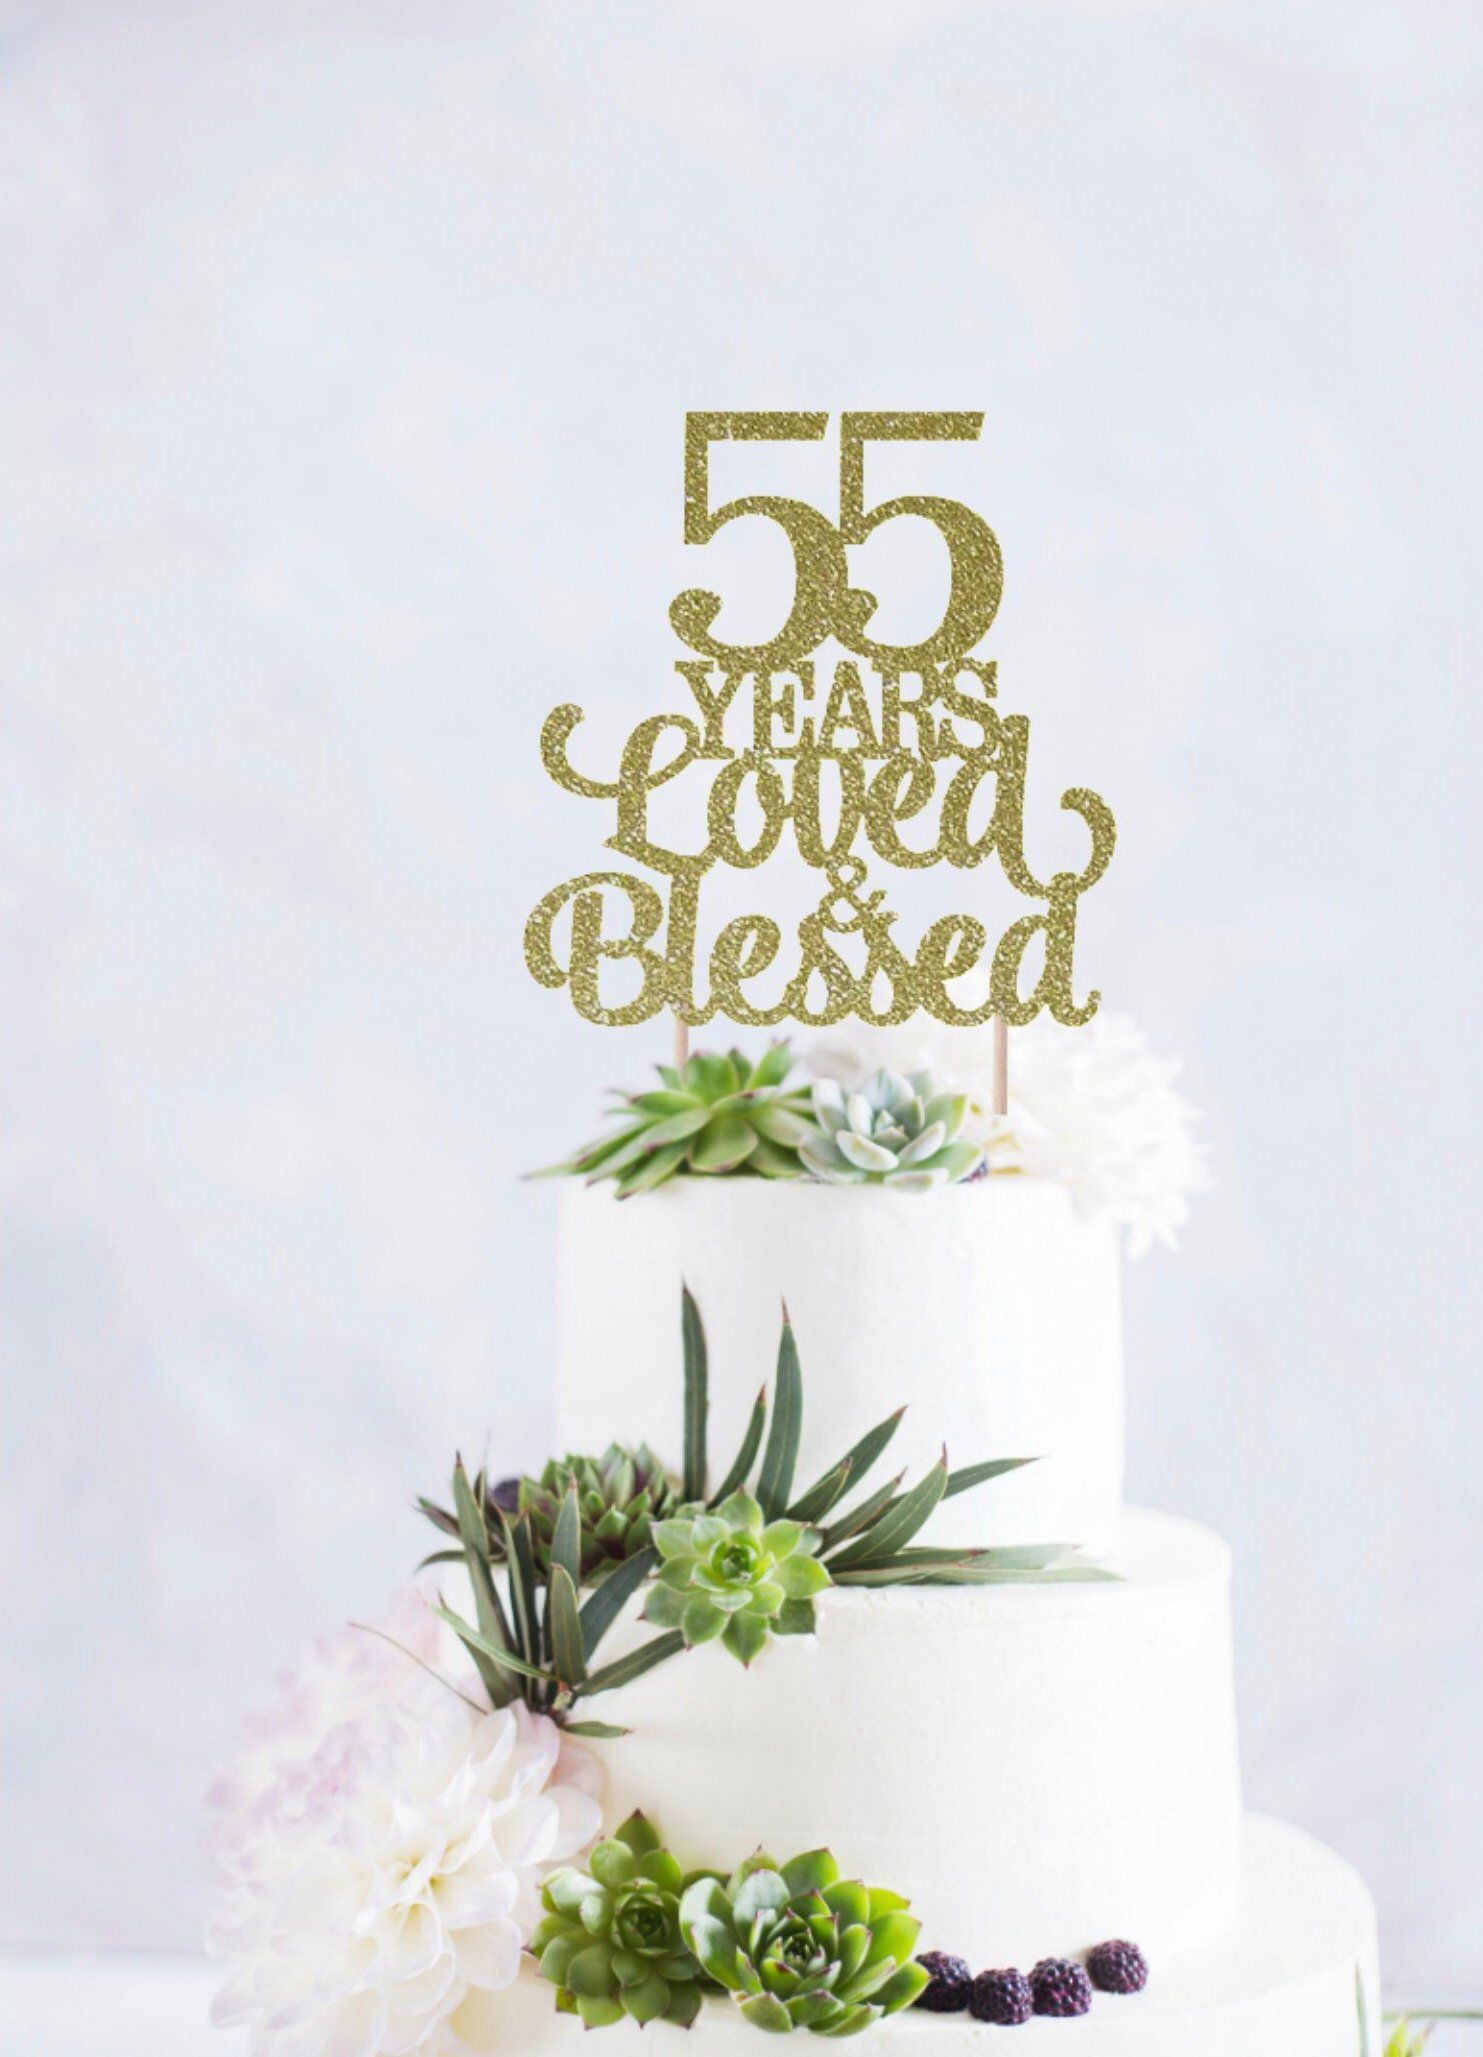 Swell Home Garden Kitchen Dining Bar Qty 12 Sixty Cake Topper Personalised Birthday Cards Paralily Jamesorg